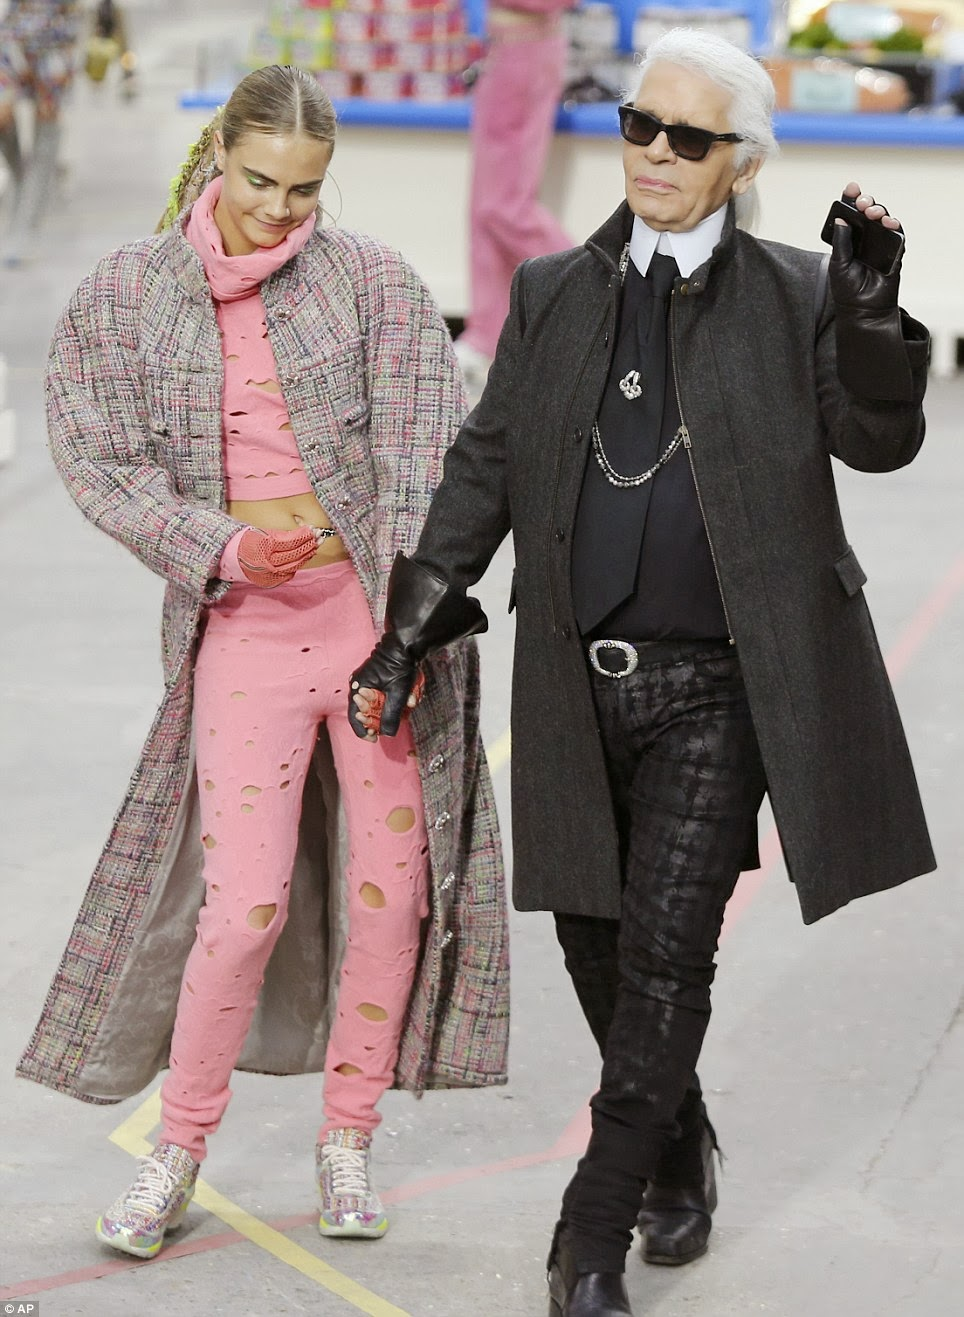 Karl Lagerfeld and Cara Develigne at Chanel